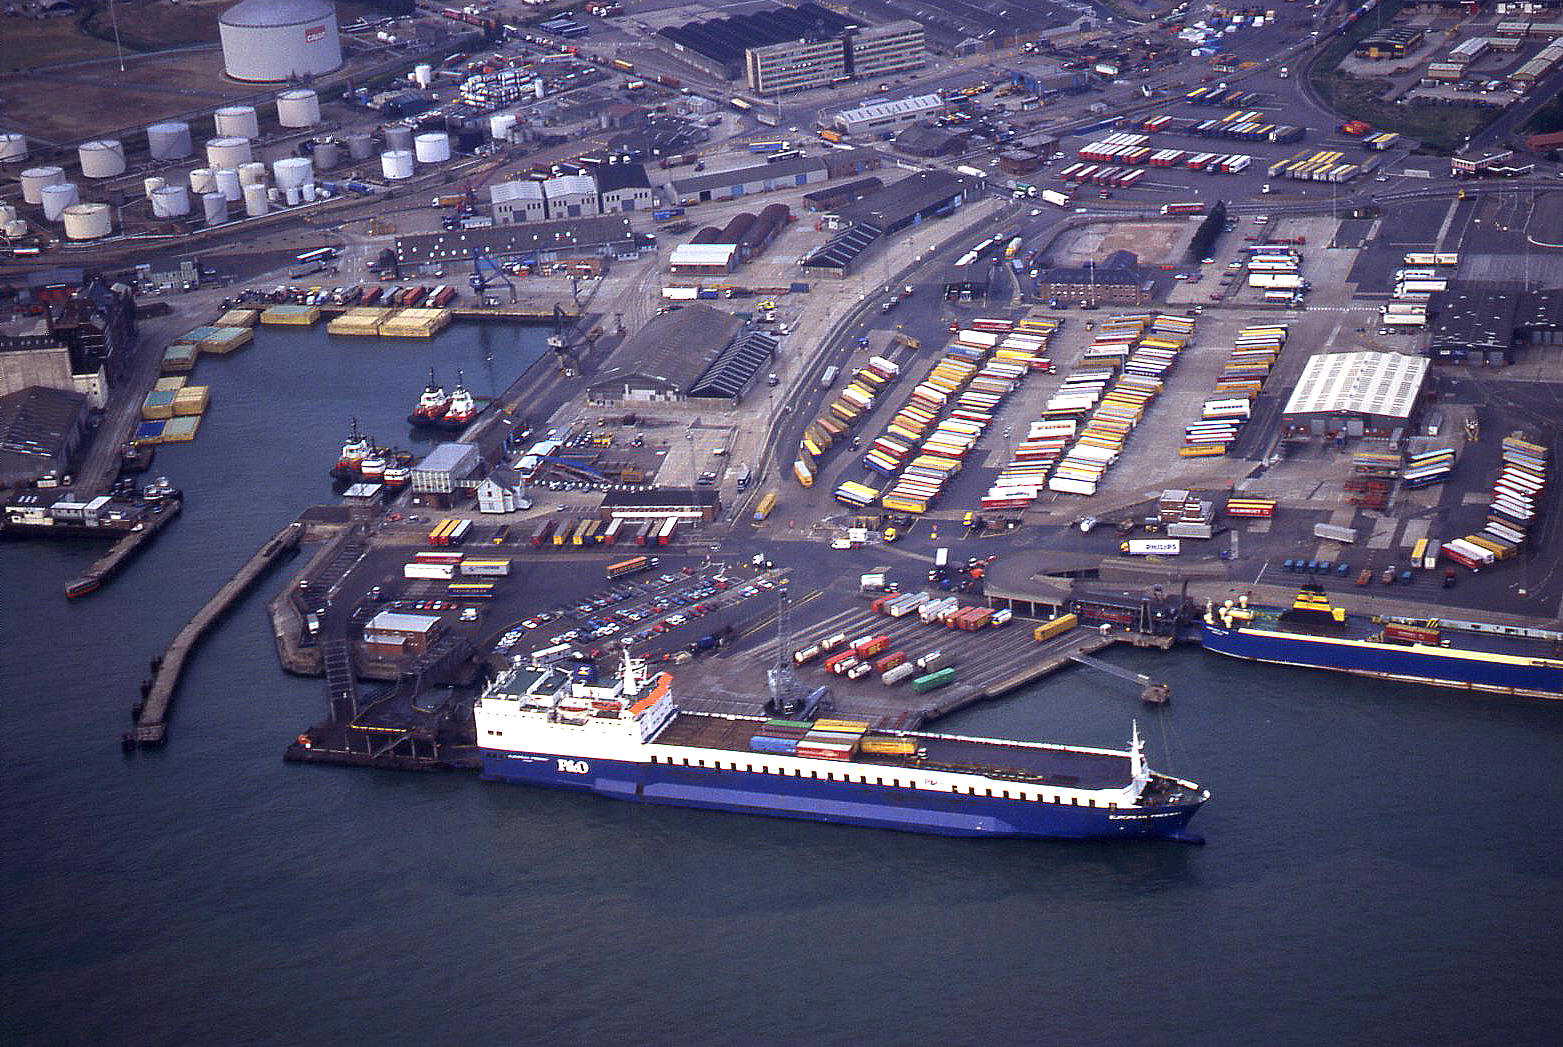 The Ro-Ro terminal in Felixstowe, Suffolk